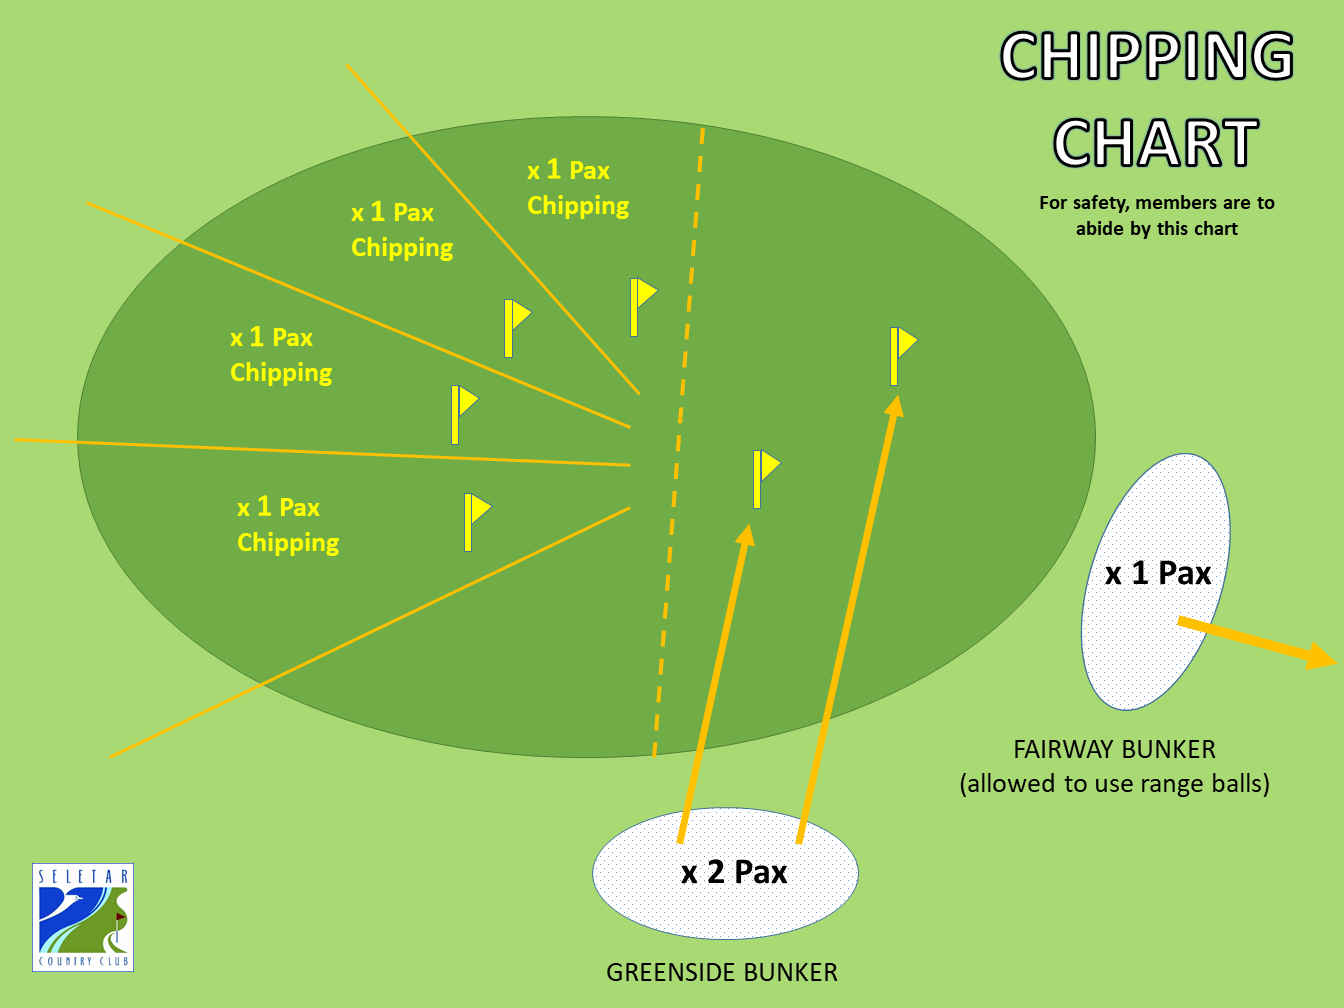 Web_Chipping Chart_8 Sep 2021